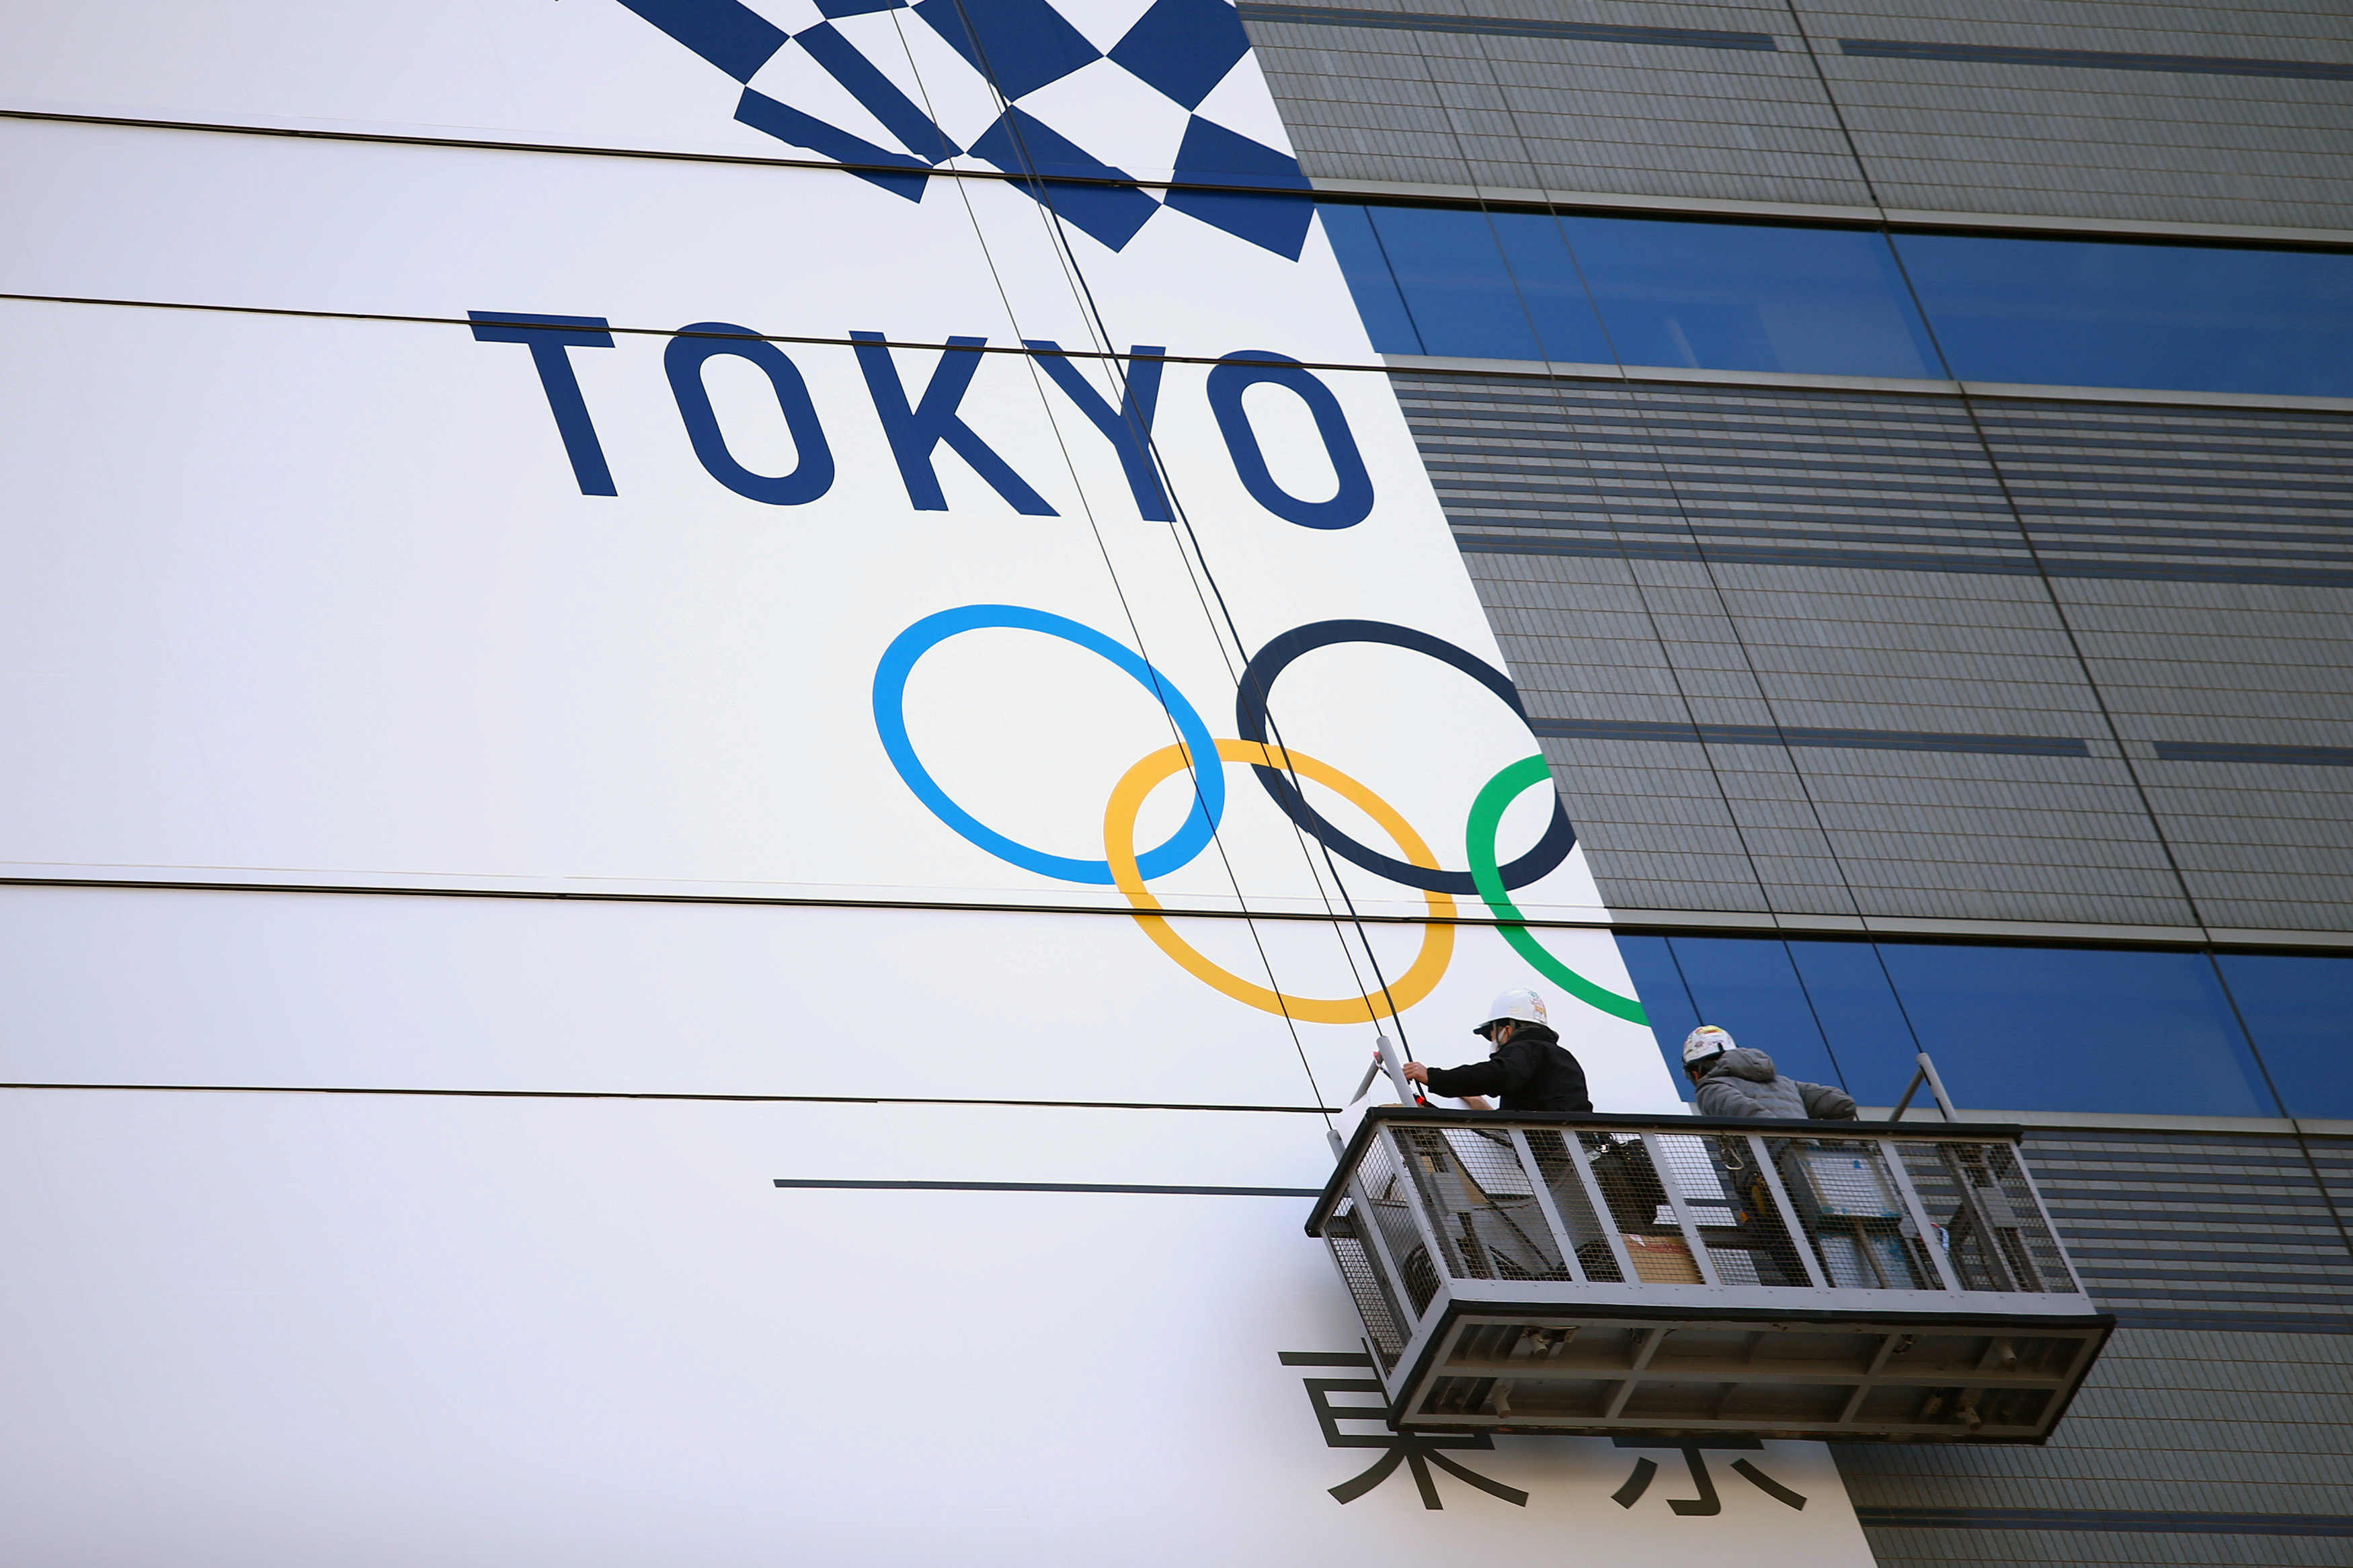 trump praises tokyo olympic preparations after suggesting delay